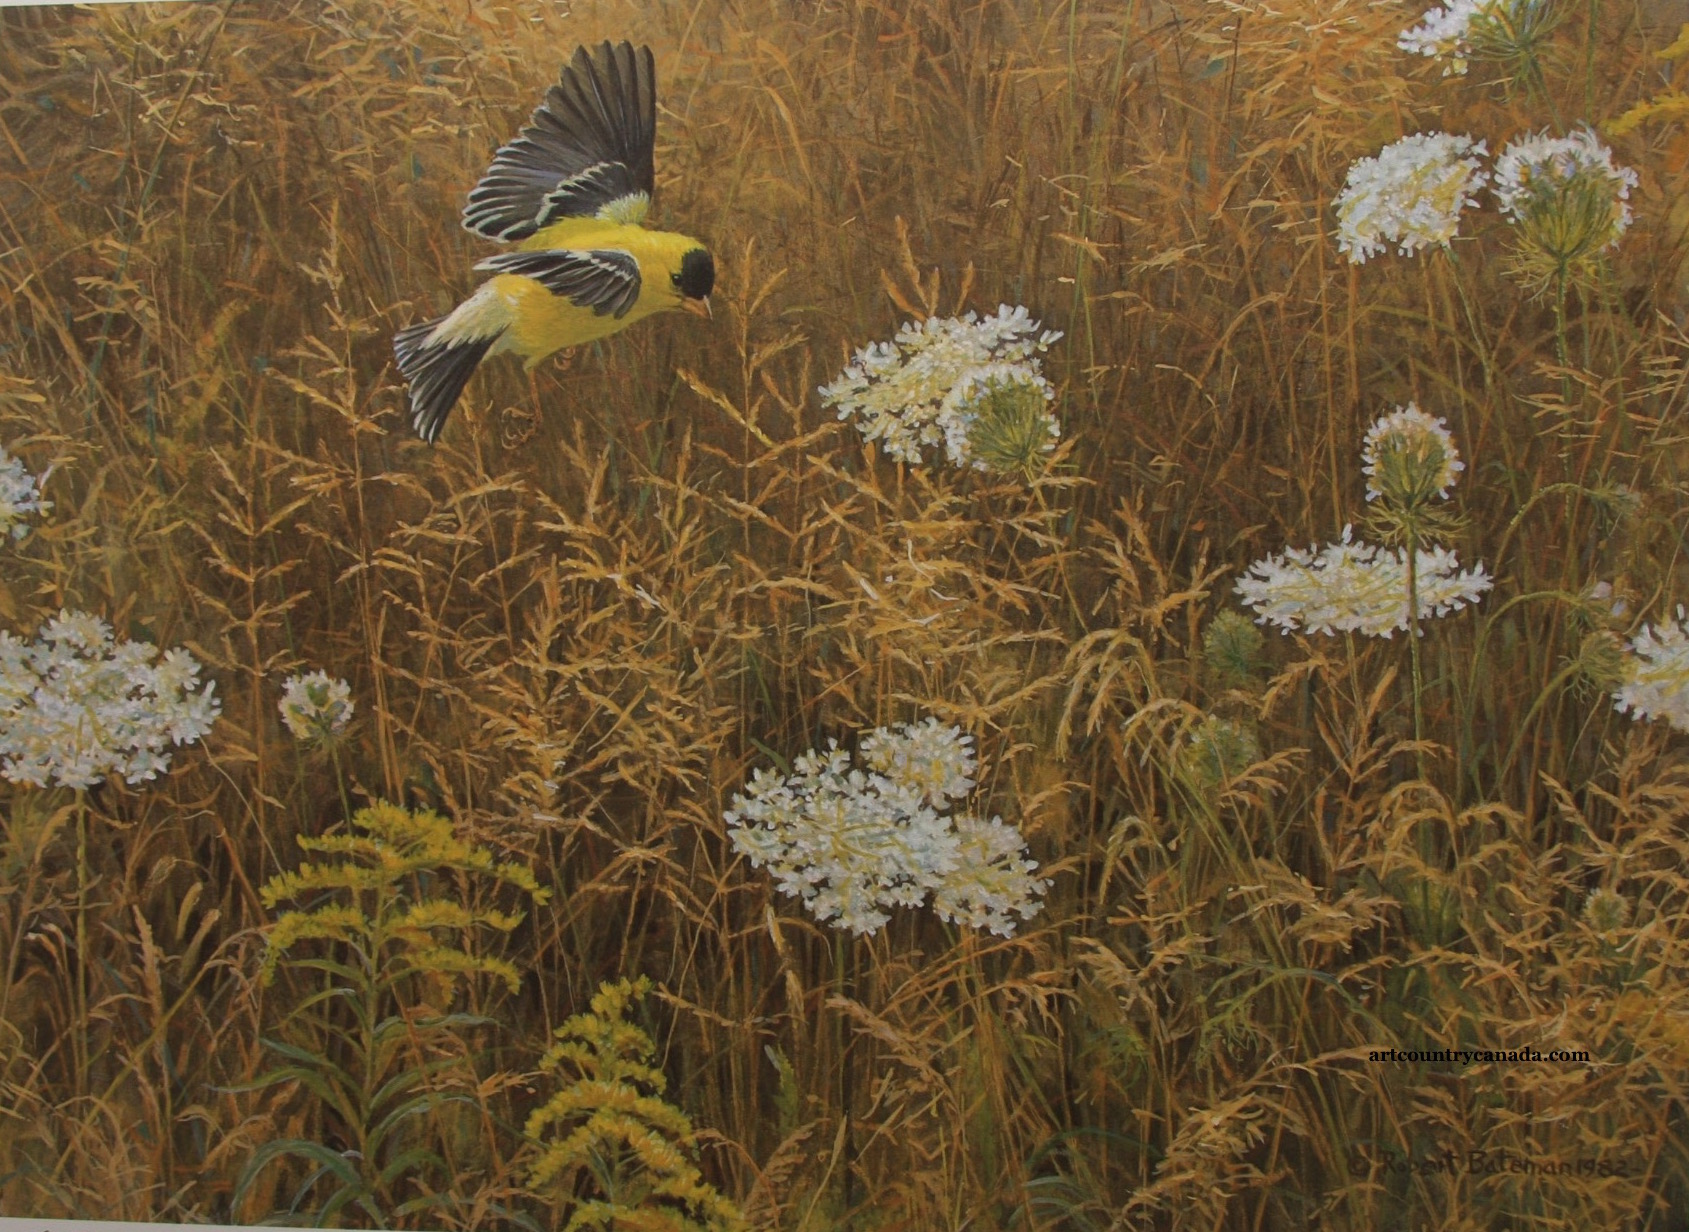 Robert Bateman Queen Anne's Lace and American Goldfinch